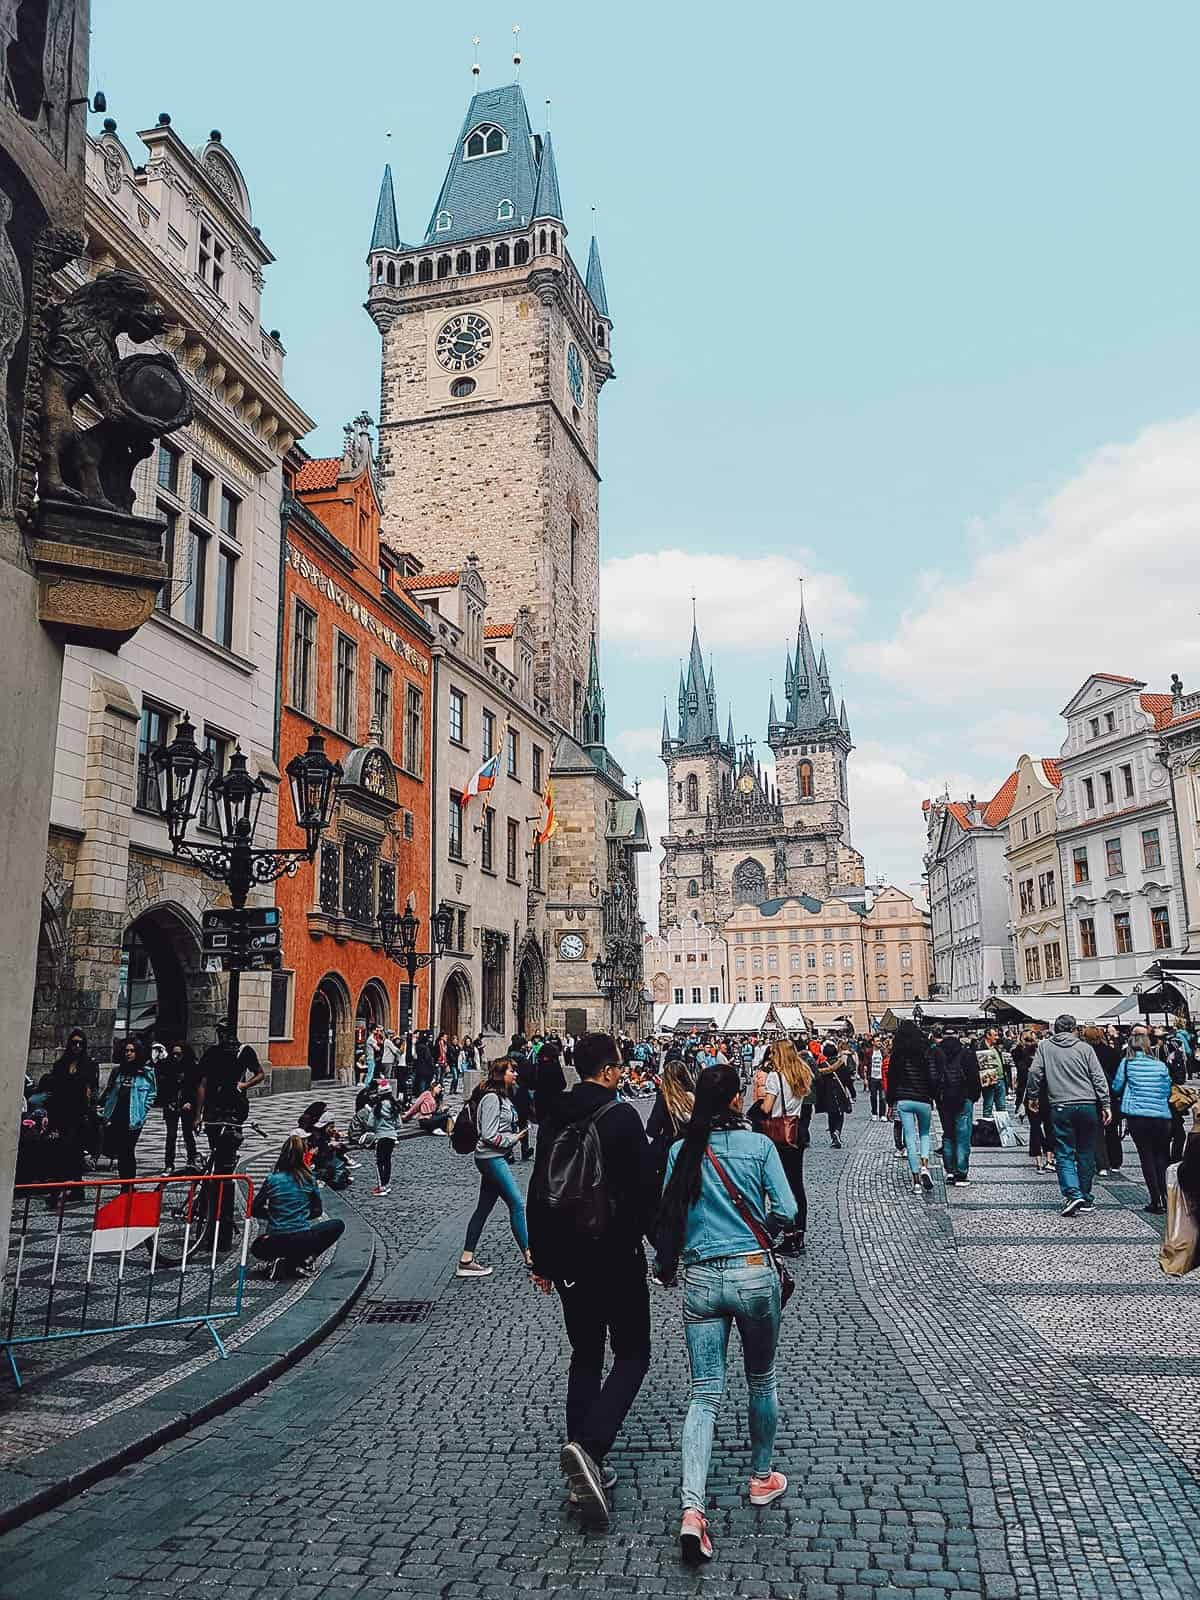 Old Town Square in Prague, Czechia